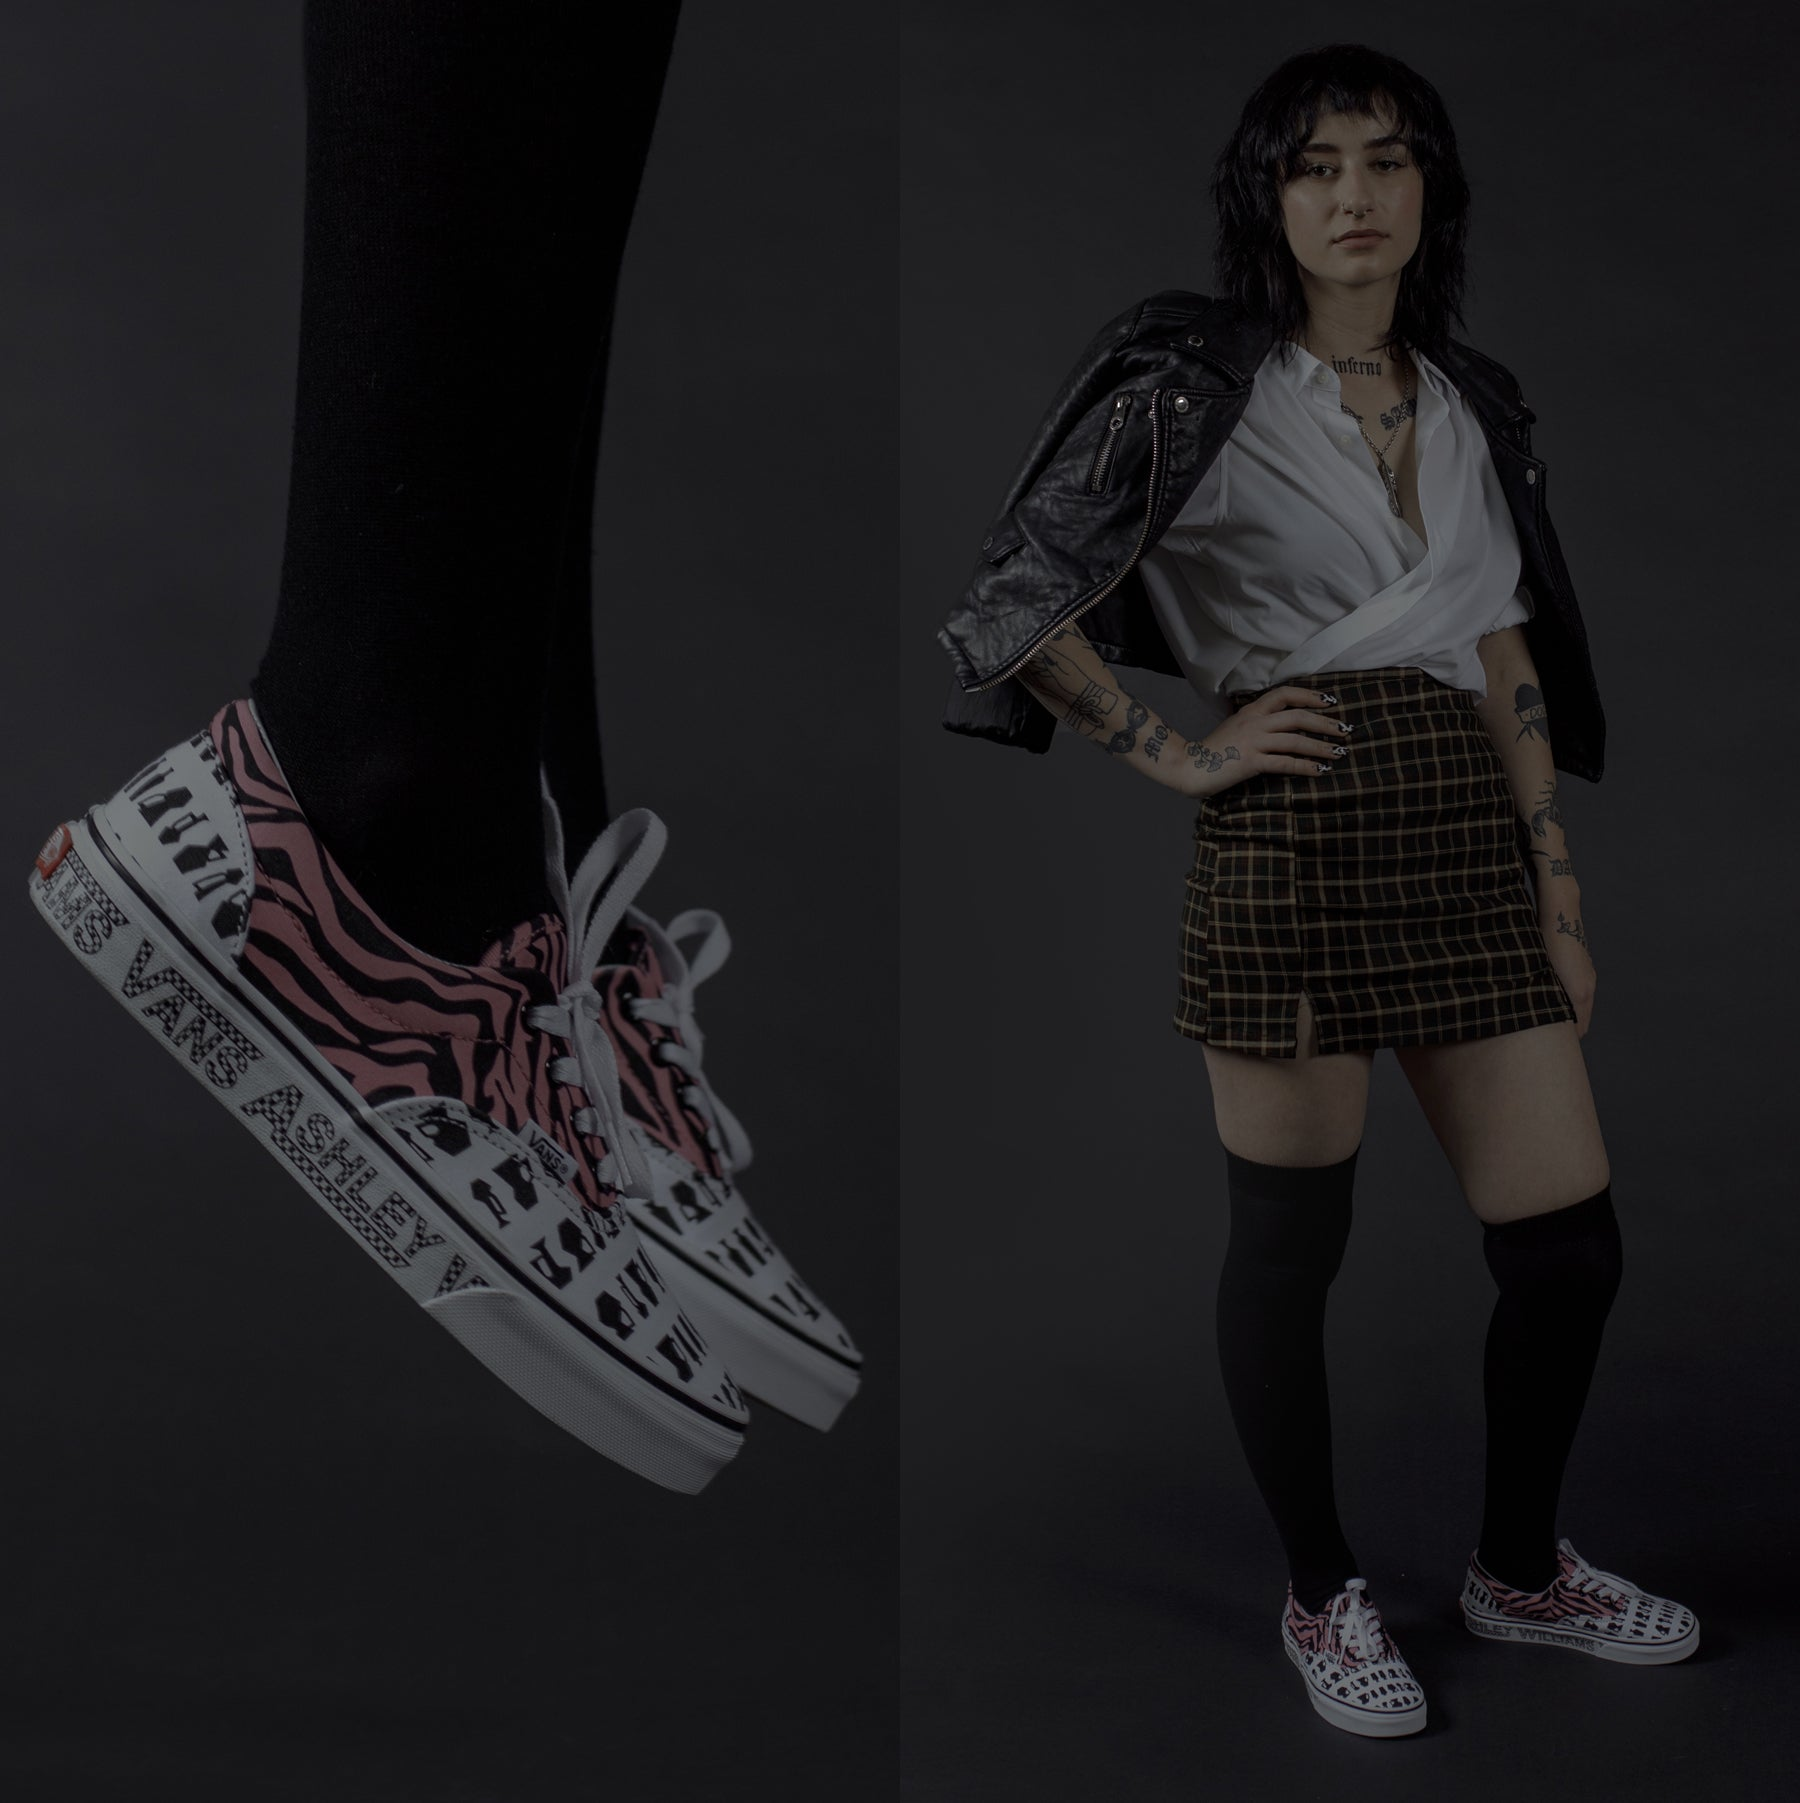 ASHLEY VILLIAMS x VANS FEATURE